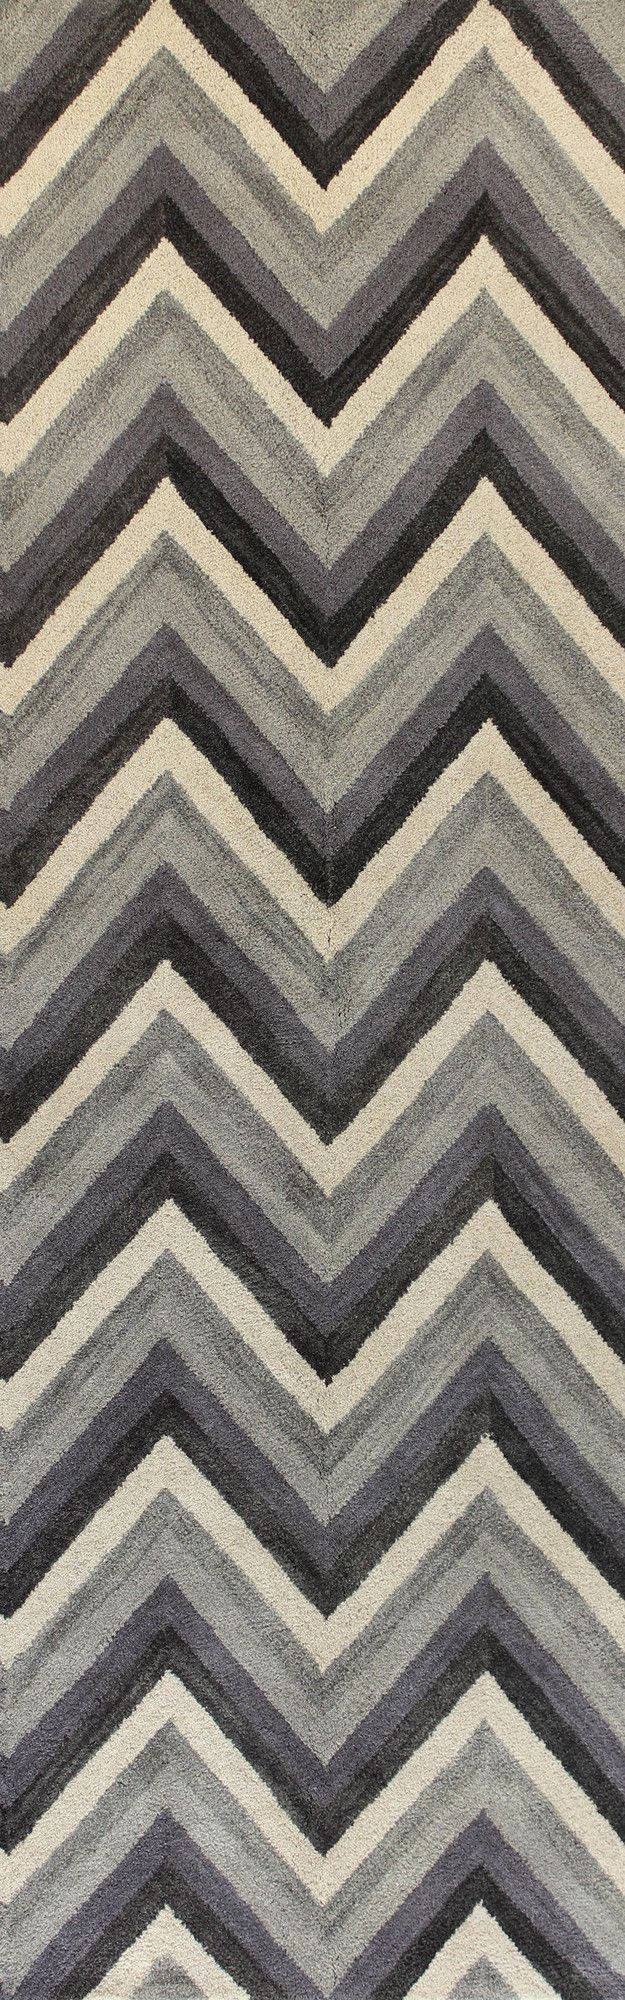 best shop bashian rugs images on pinterest - find this pin and more on shop bashian rugs